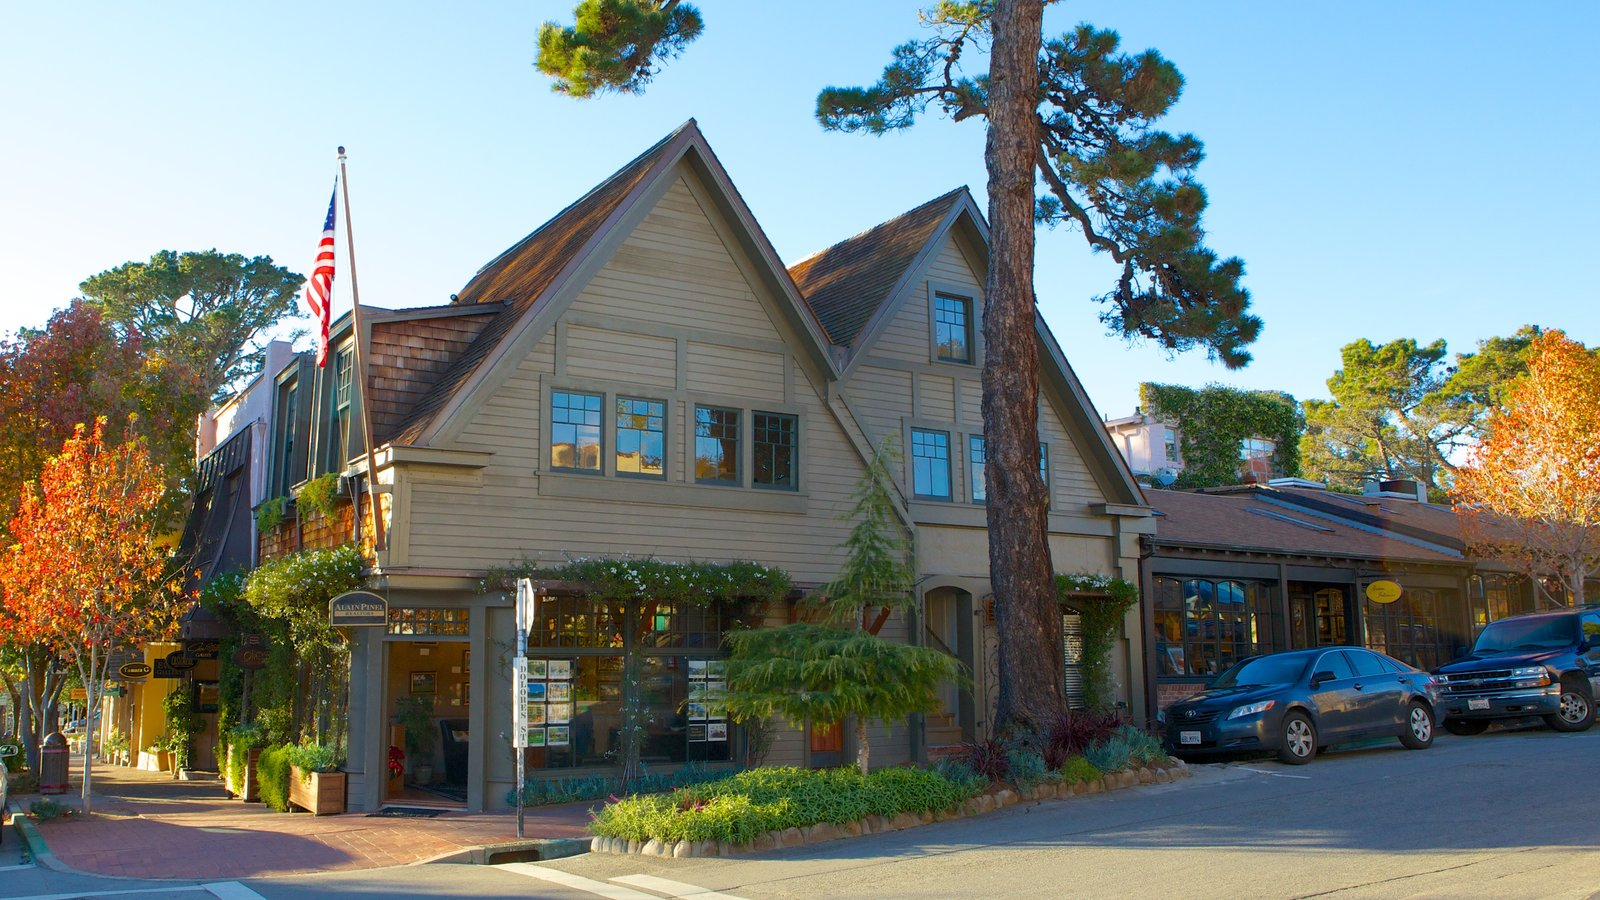 meet carmel by the sea singles Best place to meet singles in their 30's and 40's gold key award for interior  design best place to enjoy a martini top 10 best happy hours in monterey.